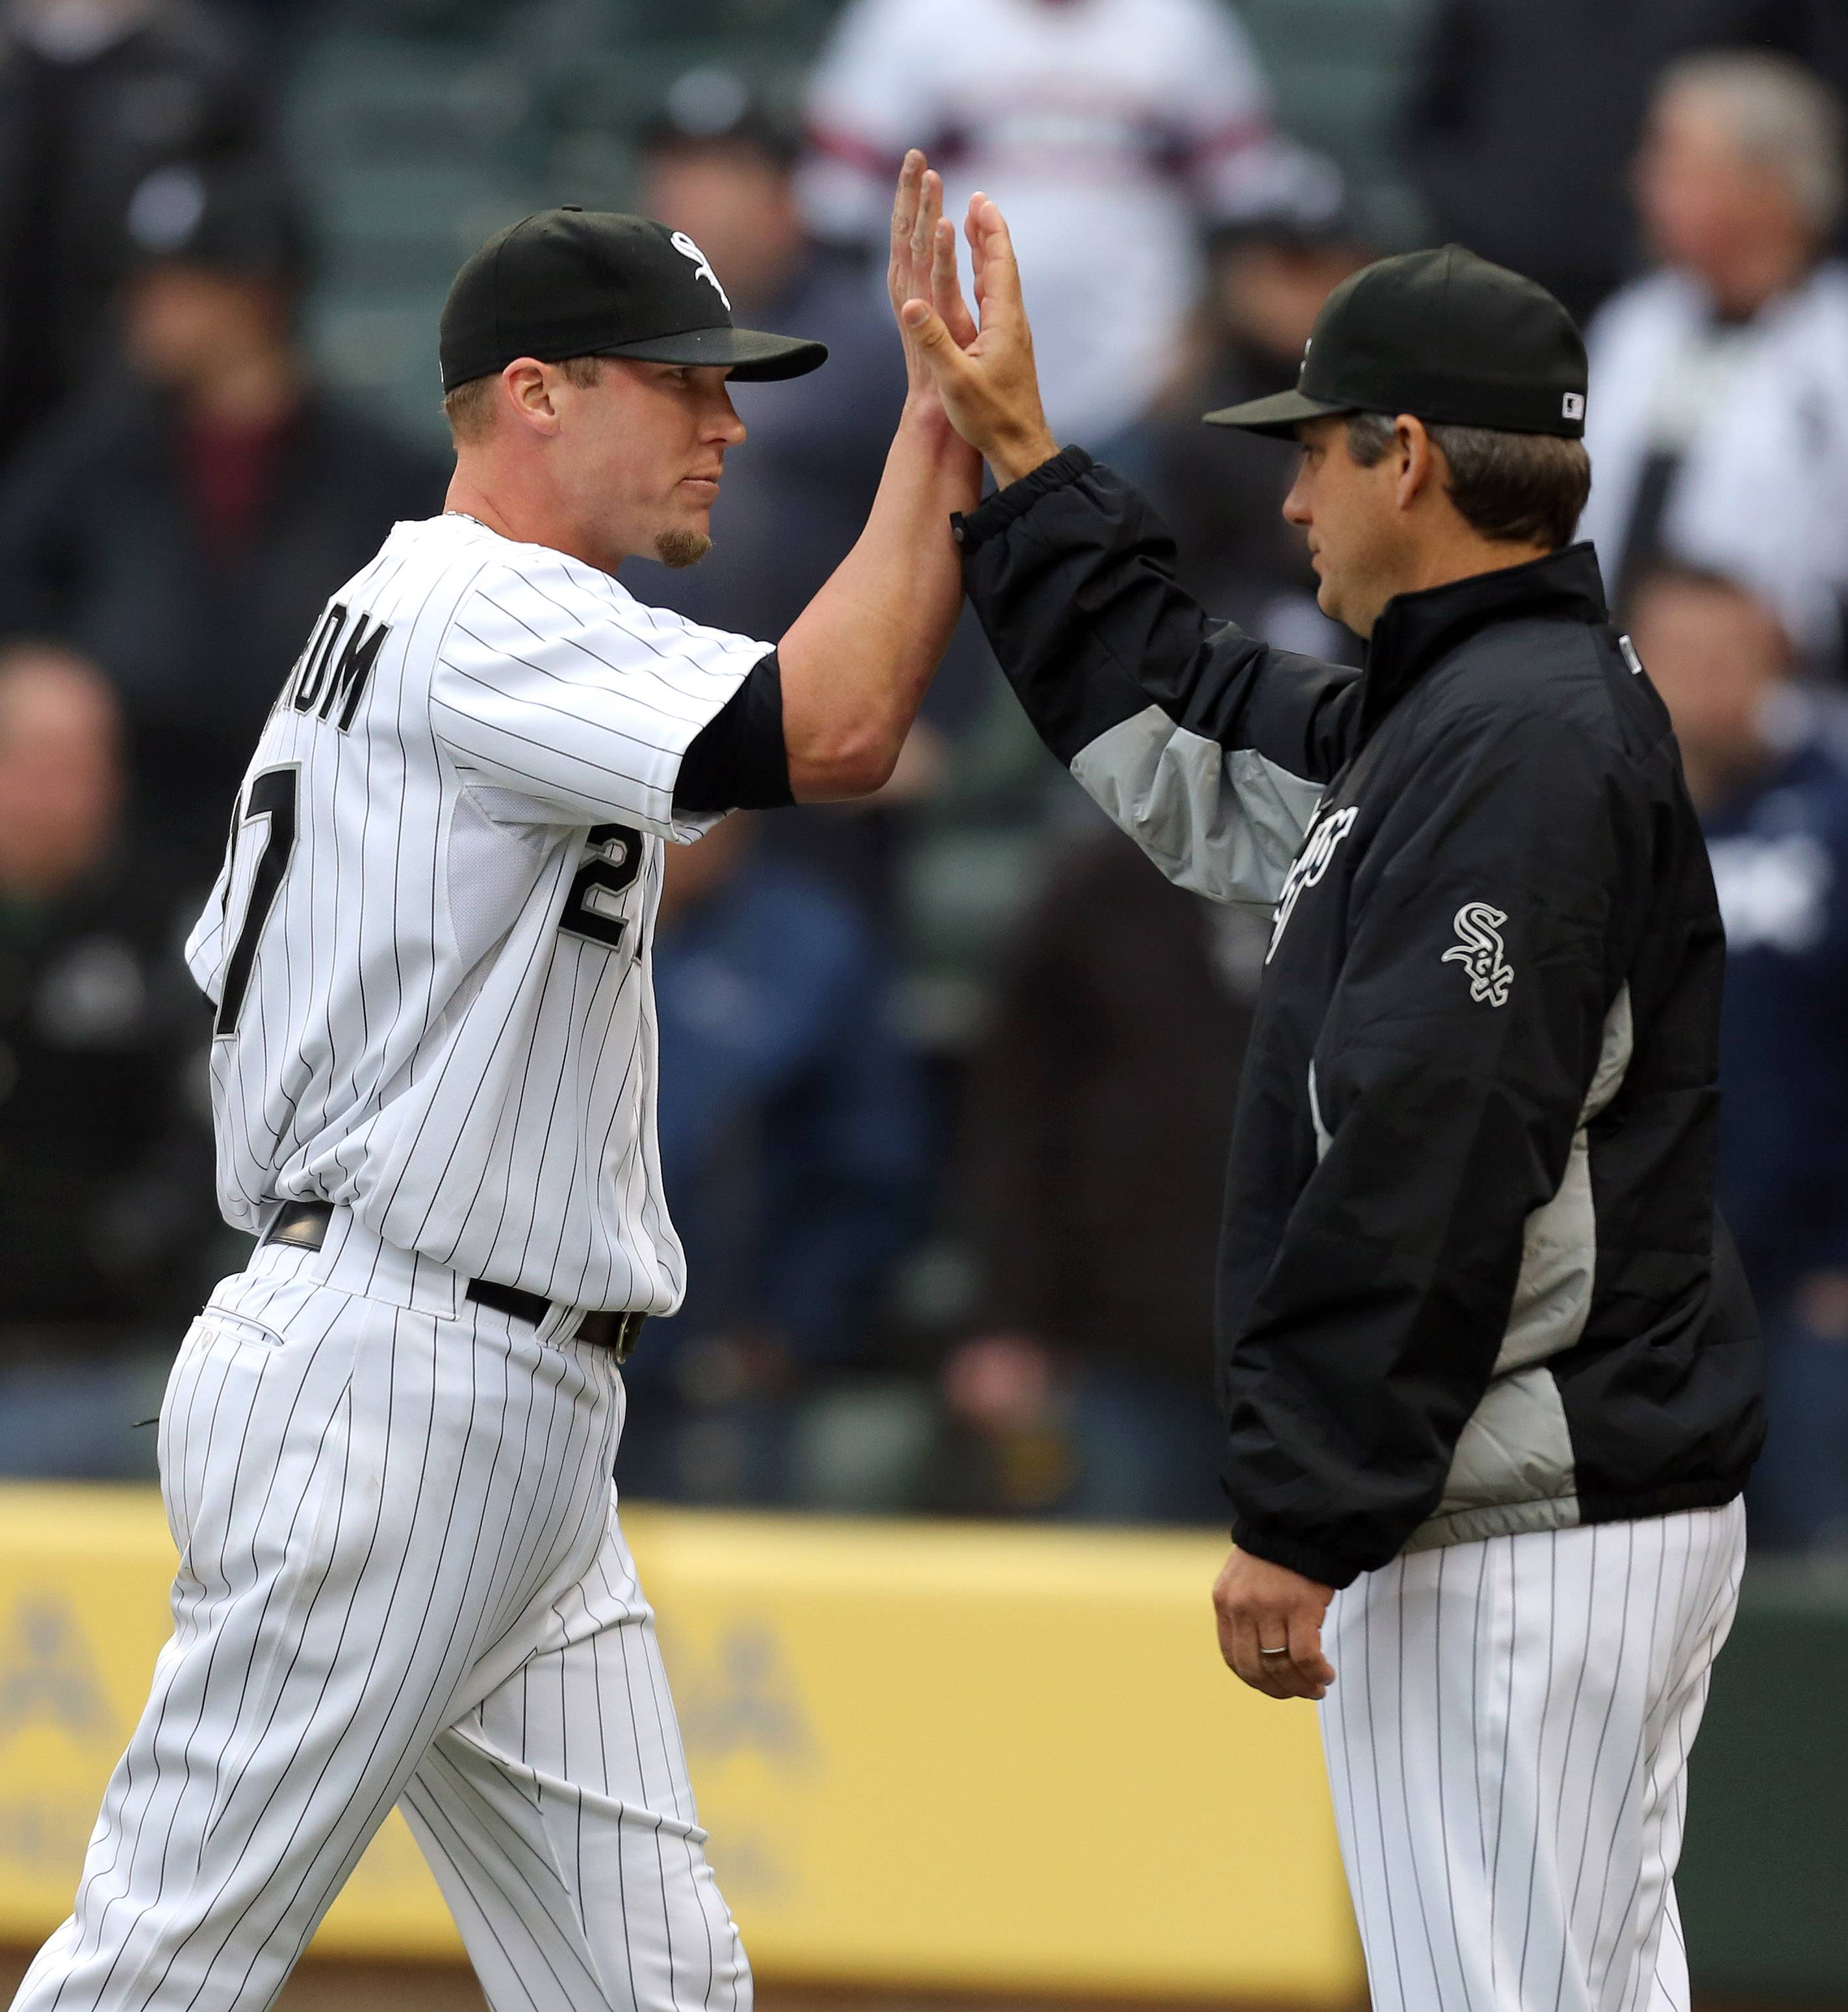 Chicago White Sox relief pitcher Matt Lindstrom, left, high-fives Chicago White Sox manager Robin Ventura after getting the save in their 5-3 win.